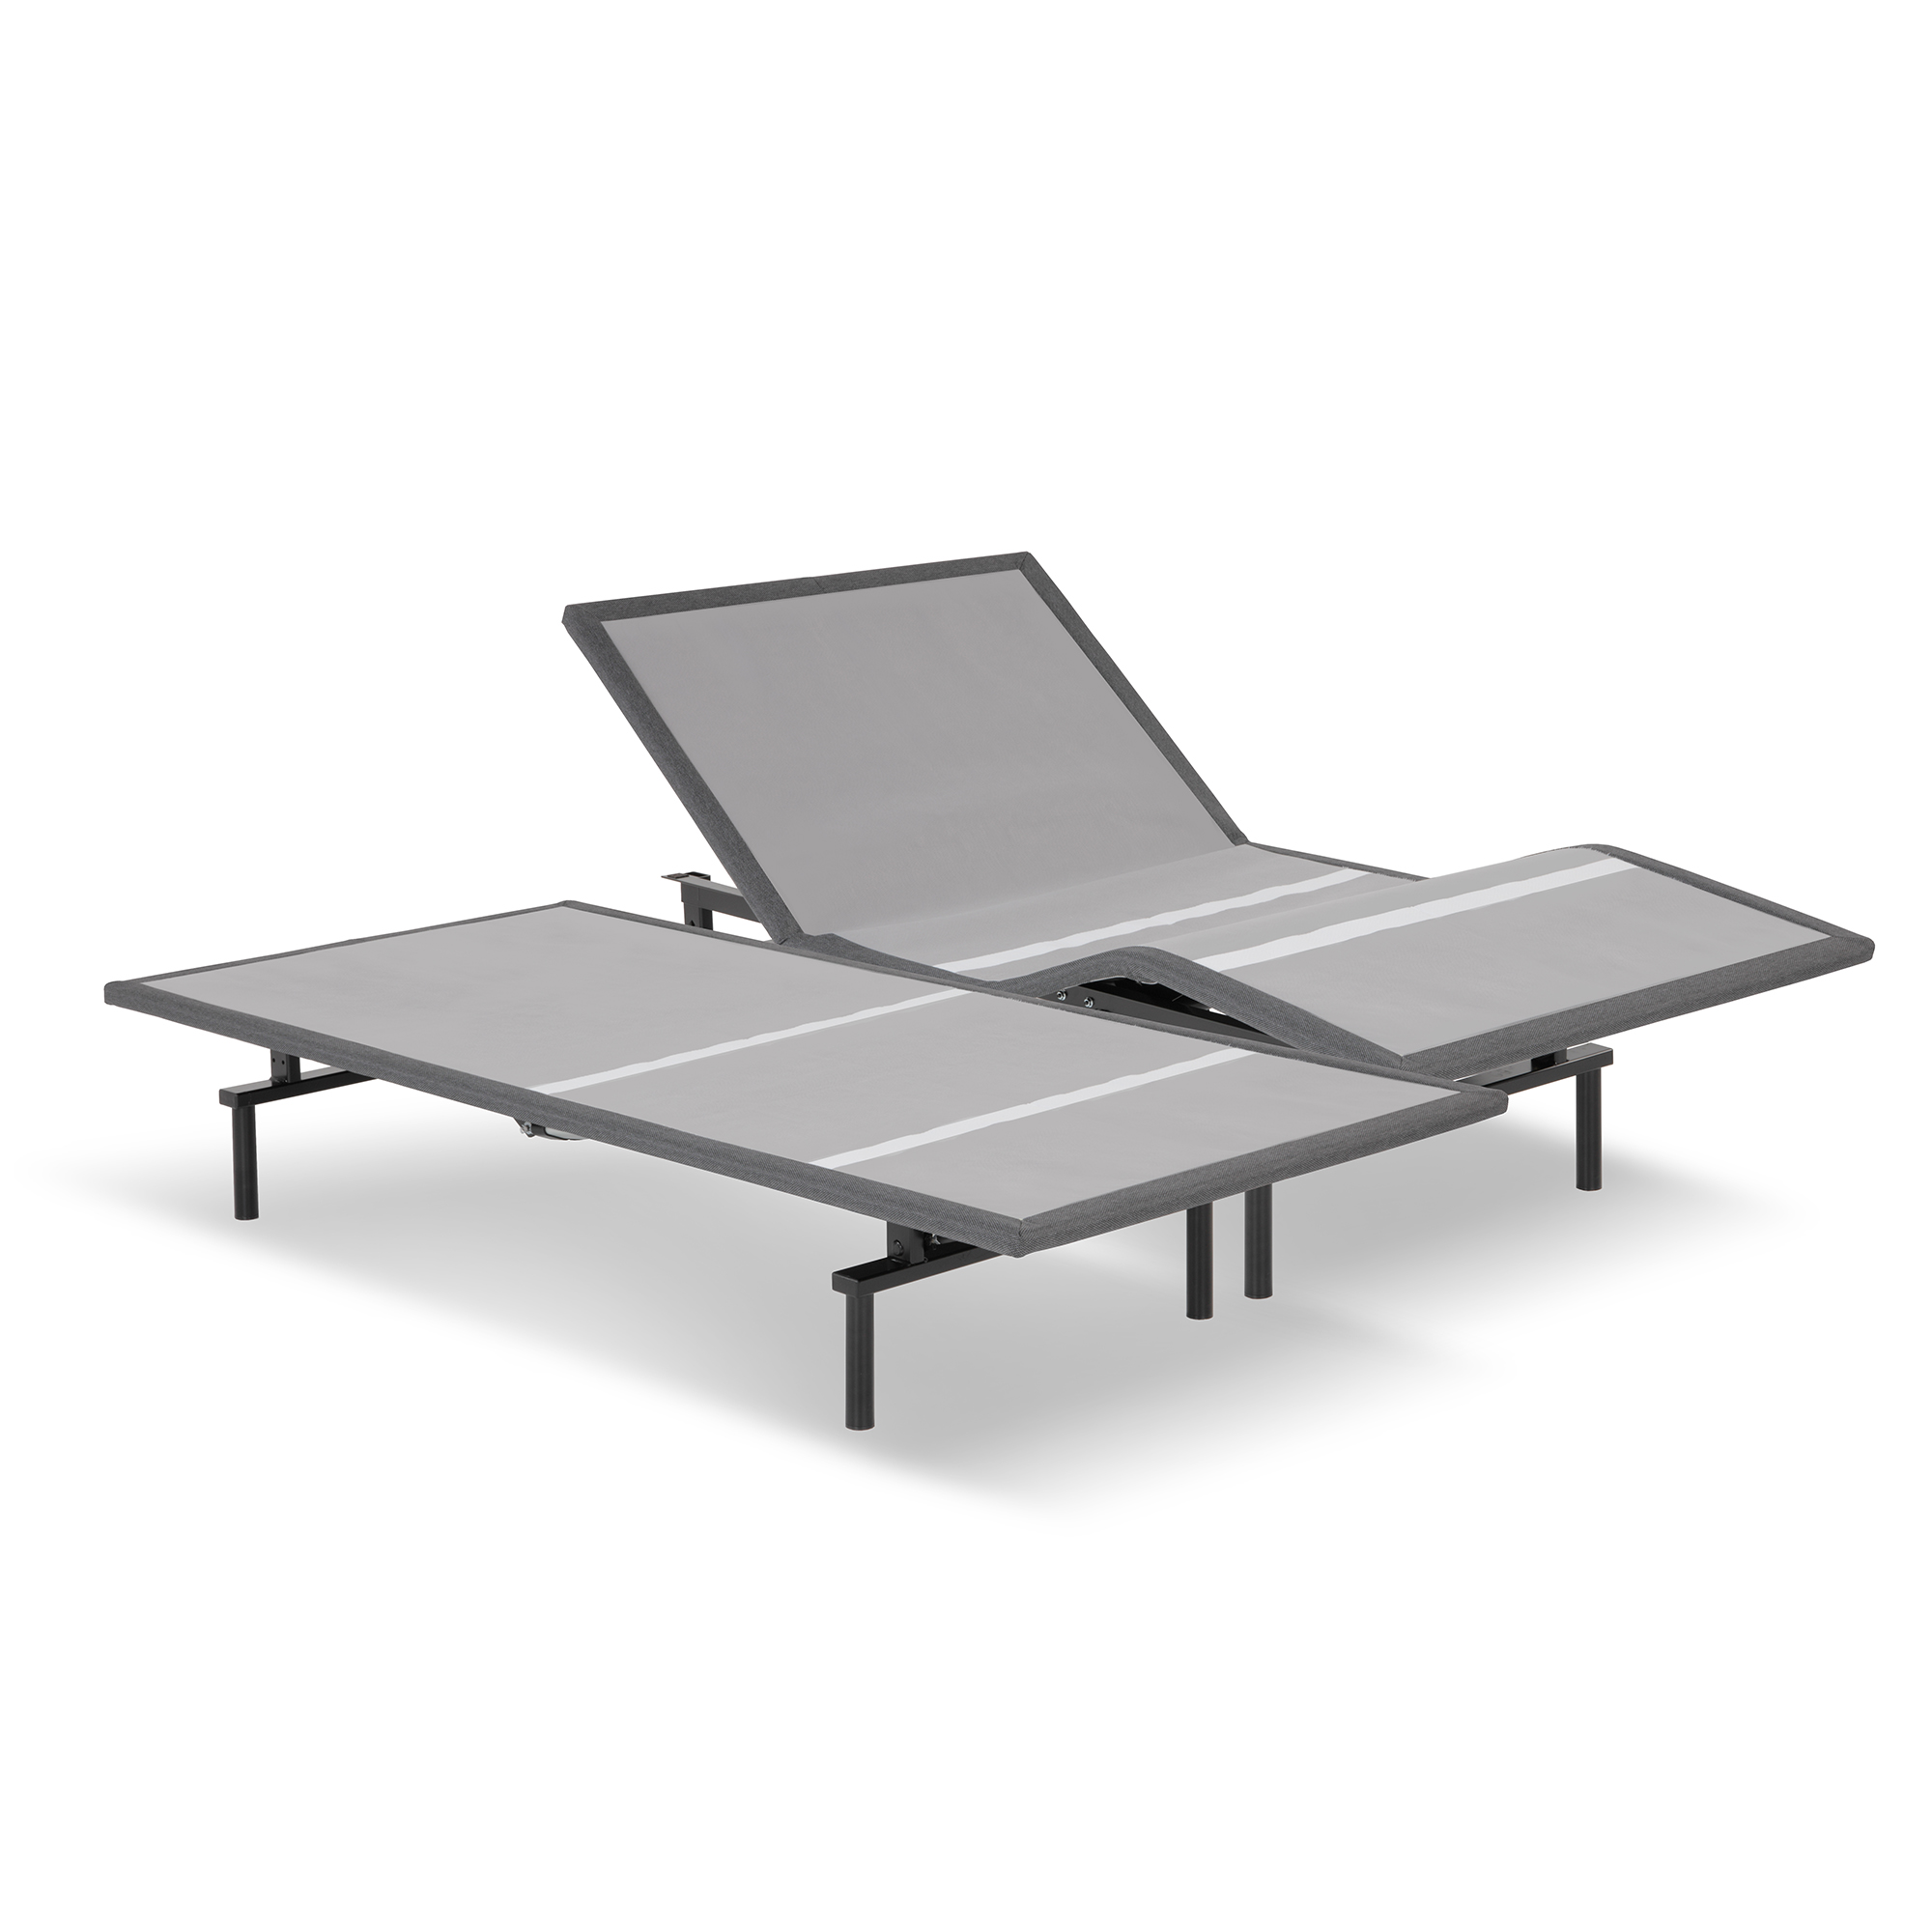 Beau 4AV181 In By Fashion Bed Group In Dickson, TN   Raven Low Profile  Adjustable Bed Base With Simultaneous Movement And Wireless Flashlight  Remote, ...